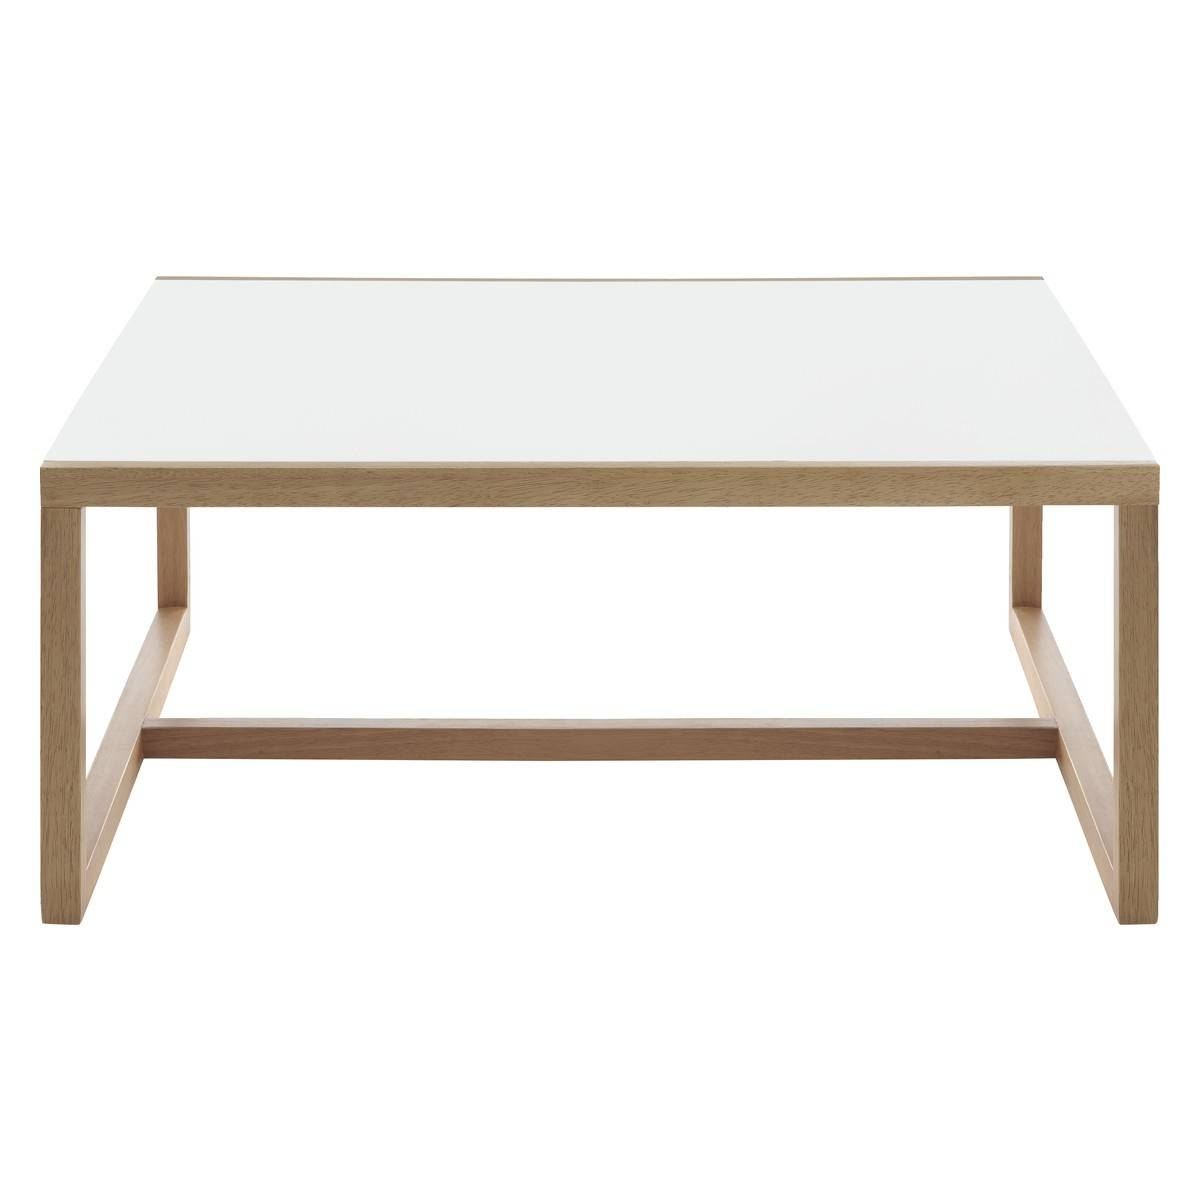 Coffee Table: Enchanting White Square Coffee Table Designs White intended for White Coffee Tables With Storage (Image 5 of 30)